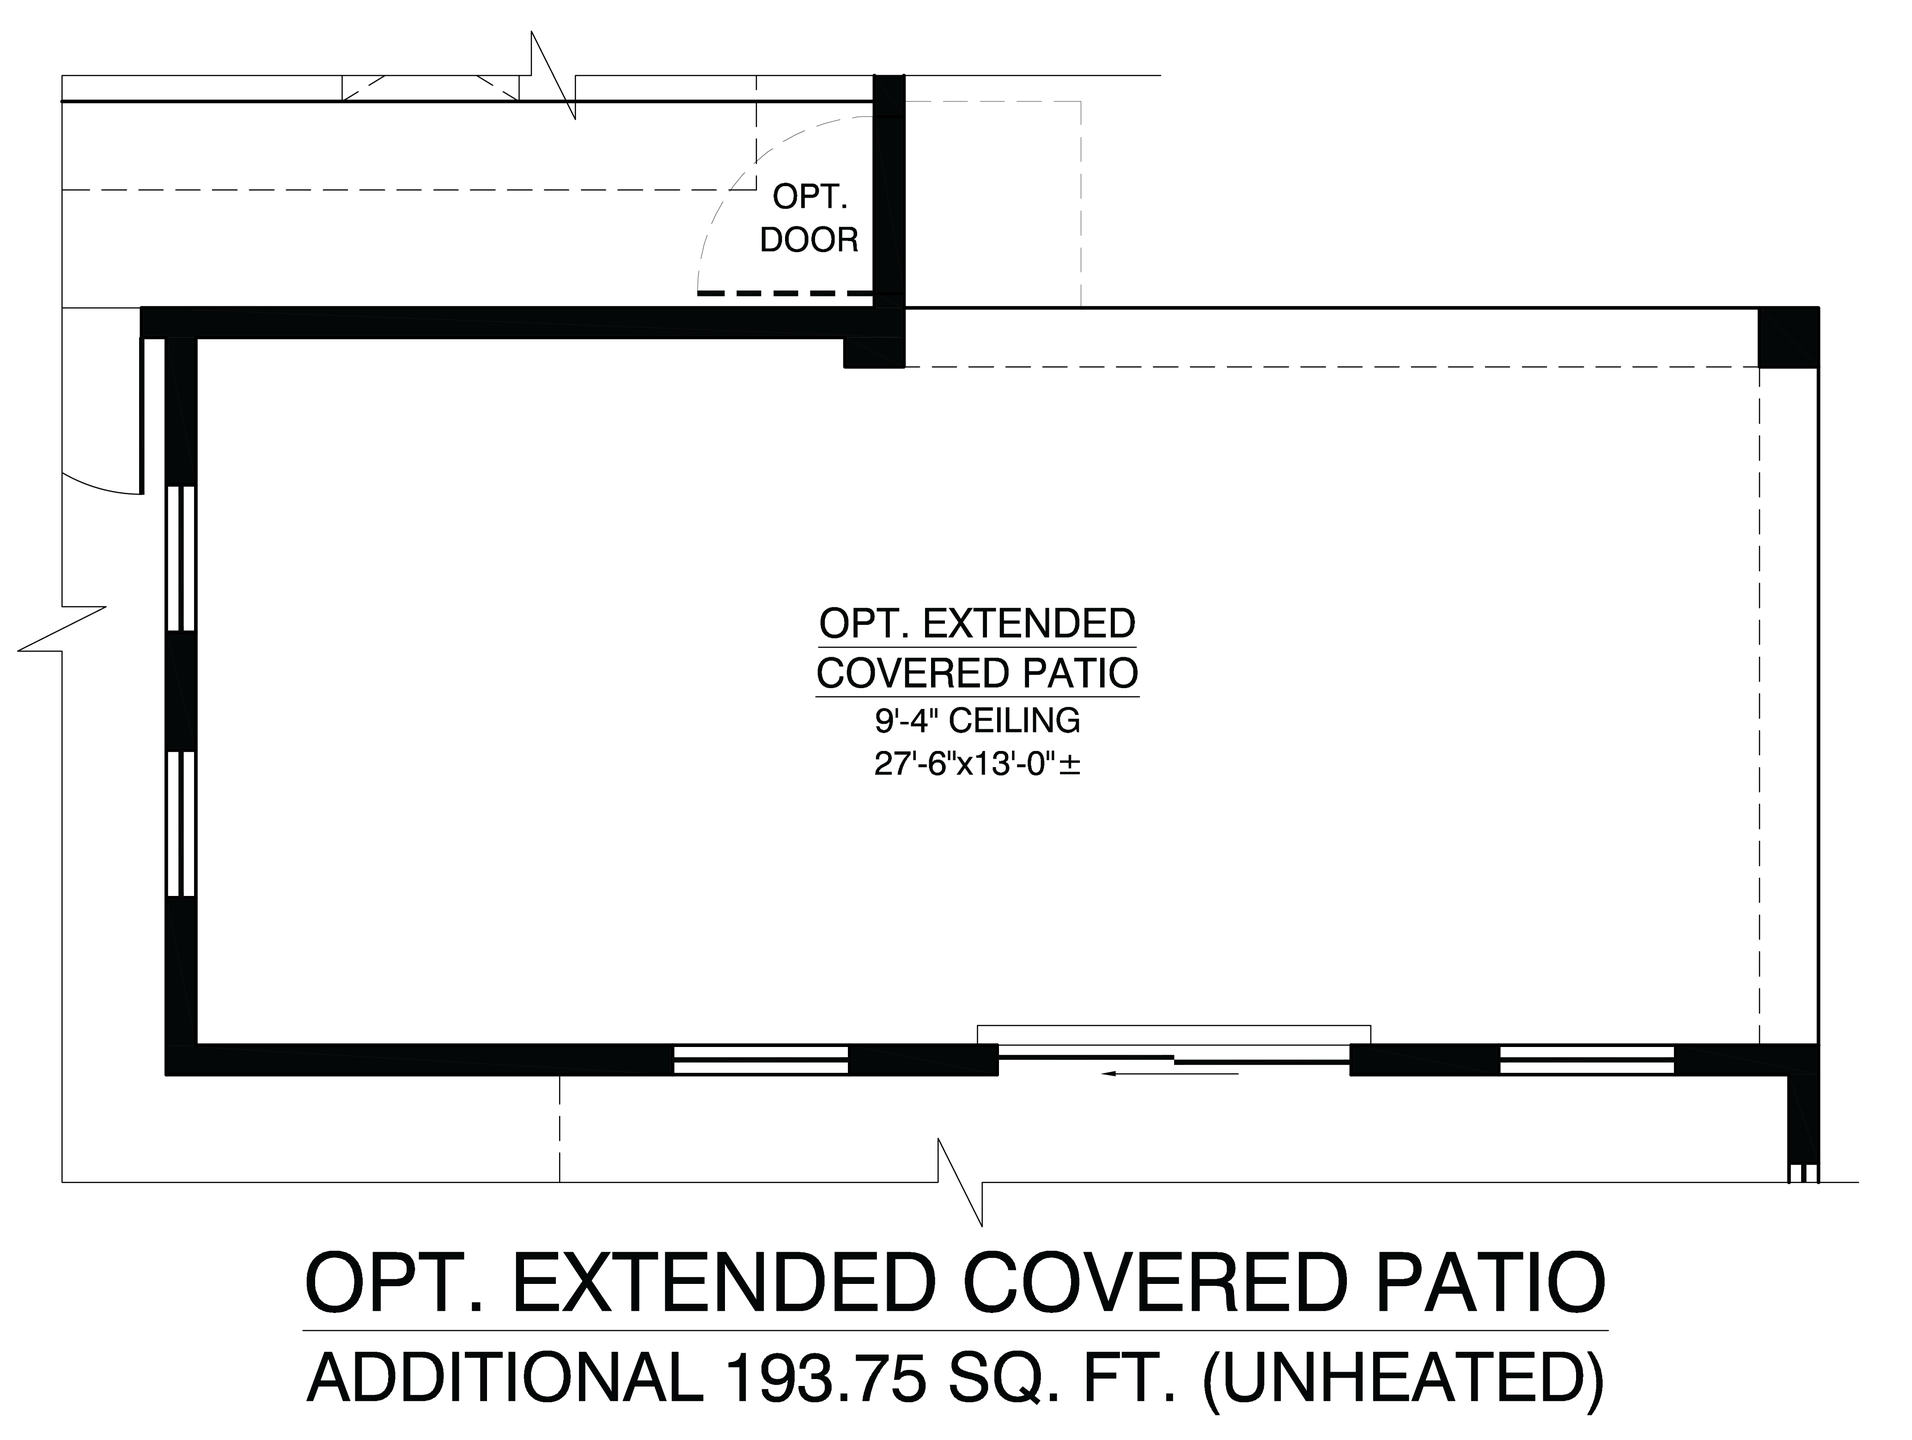 Optional Extended Covered Patio